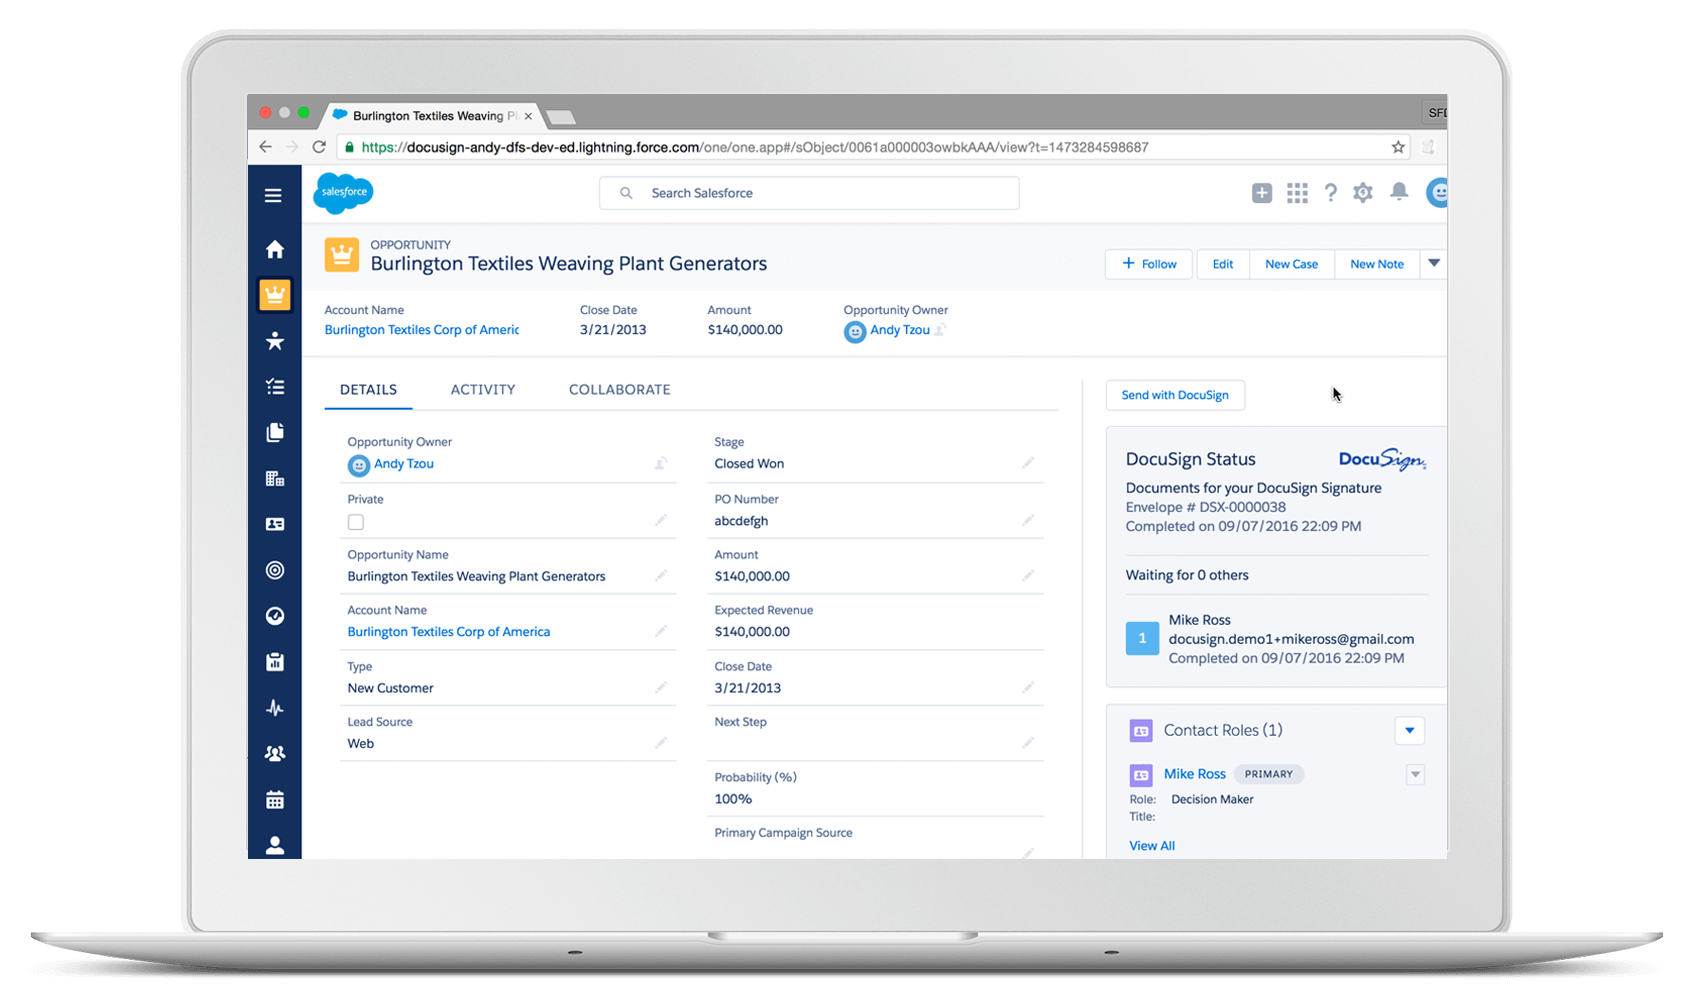 DocuSign - 15 Salesforce Integrations for Sales Teams To Boost Productivity